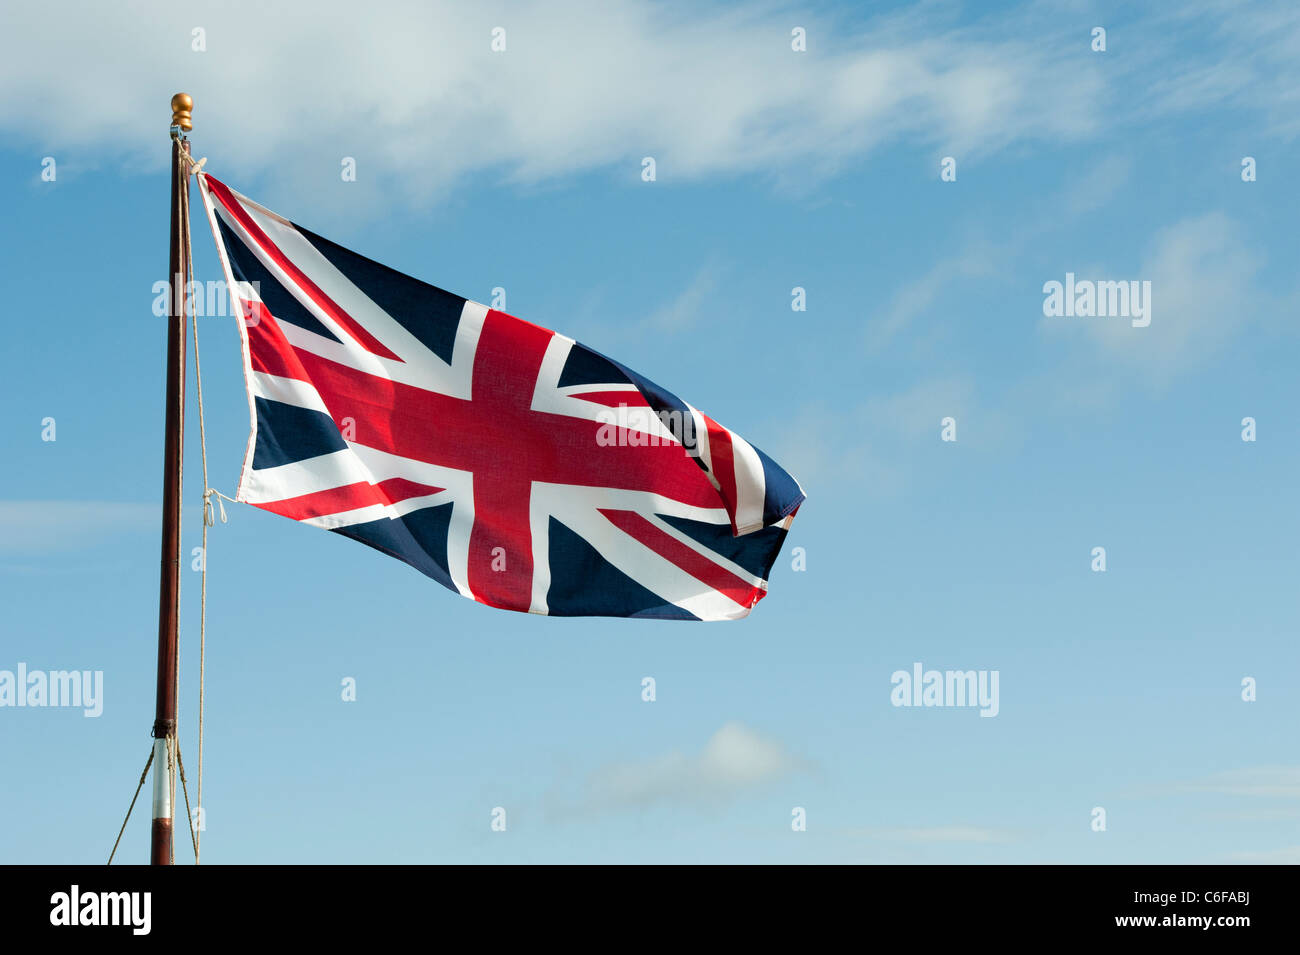 Union Jack flag flapping in the wind against a blue sky - Stock Image